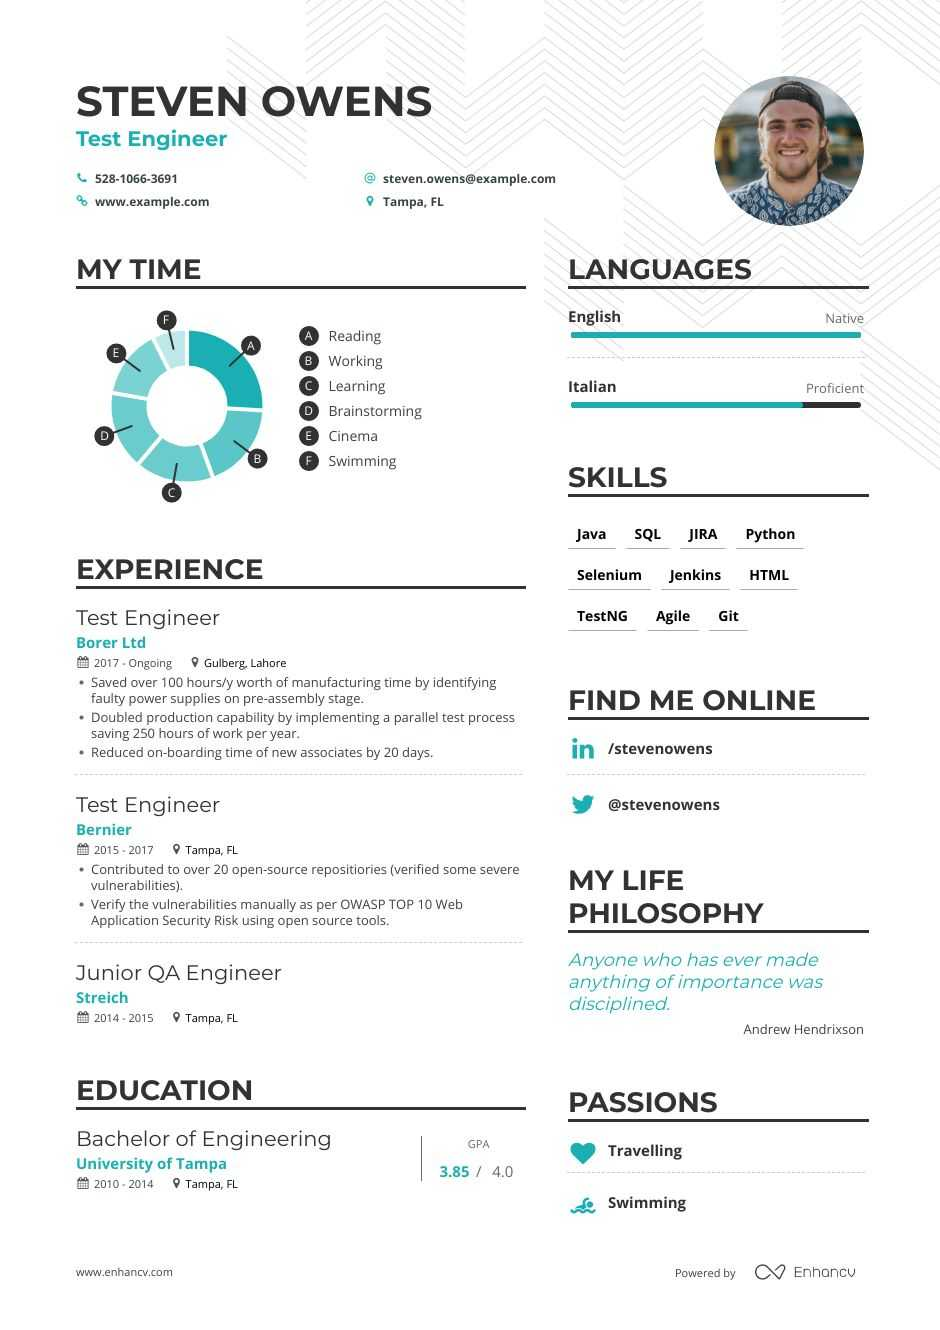 top test engineer resume examples expert tips enhancv format for software buyer job Resume Resume Format For Software Test Engineer